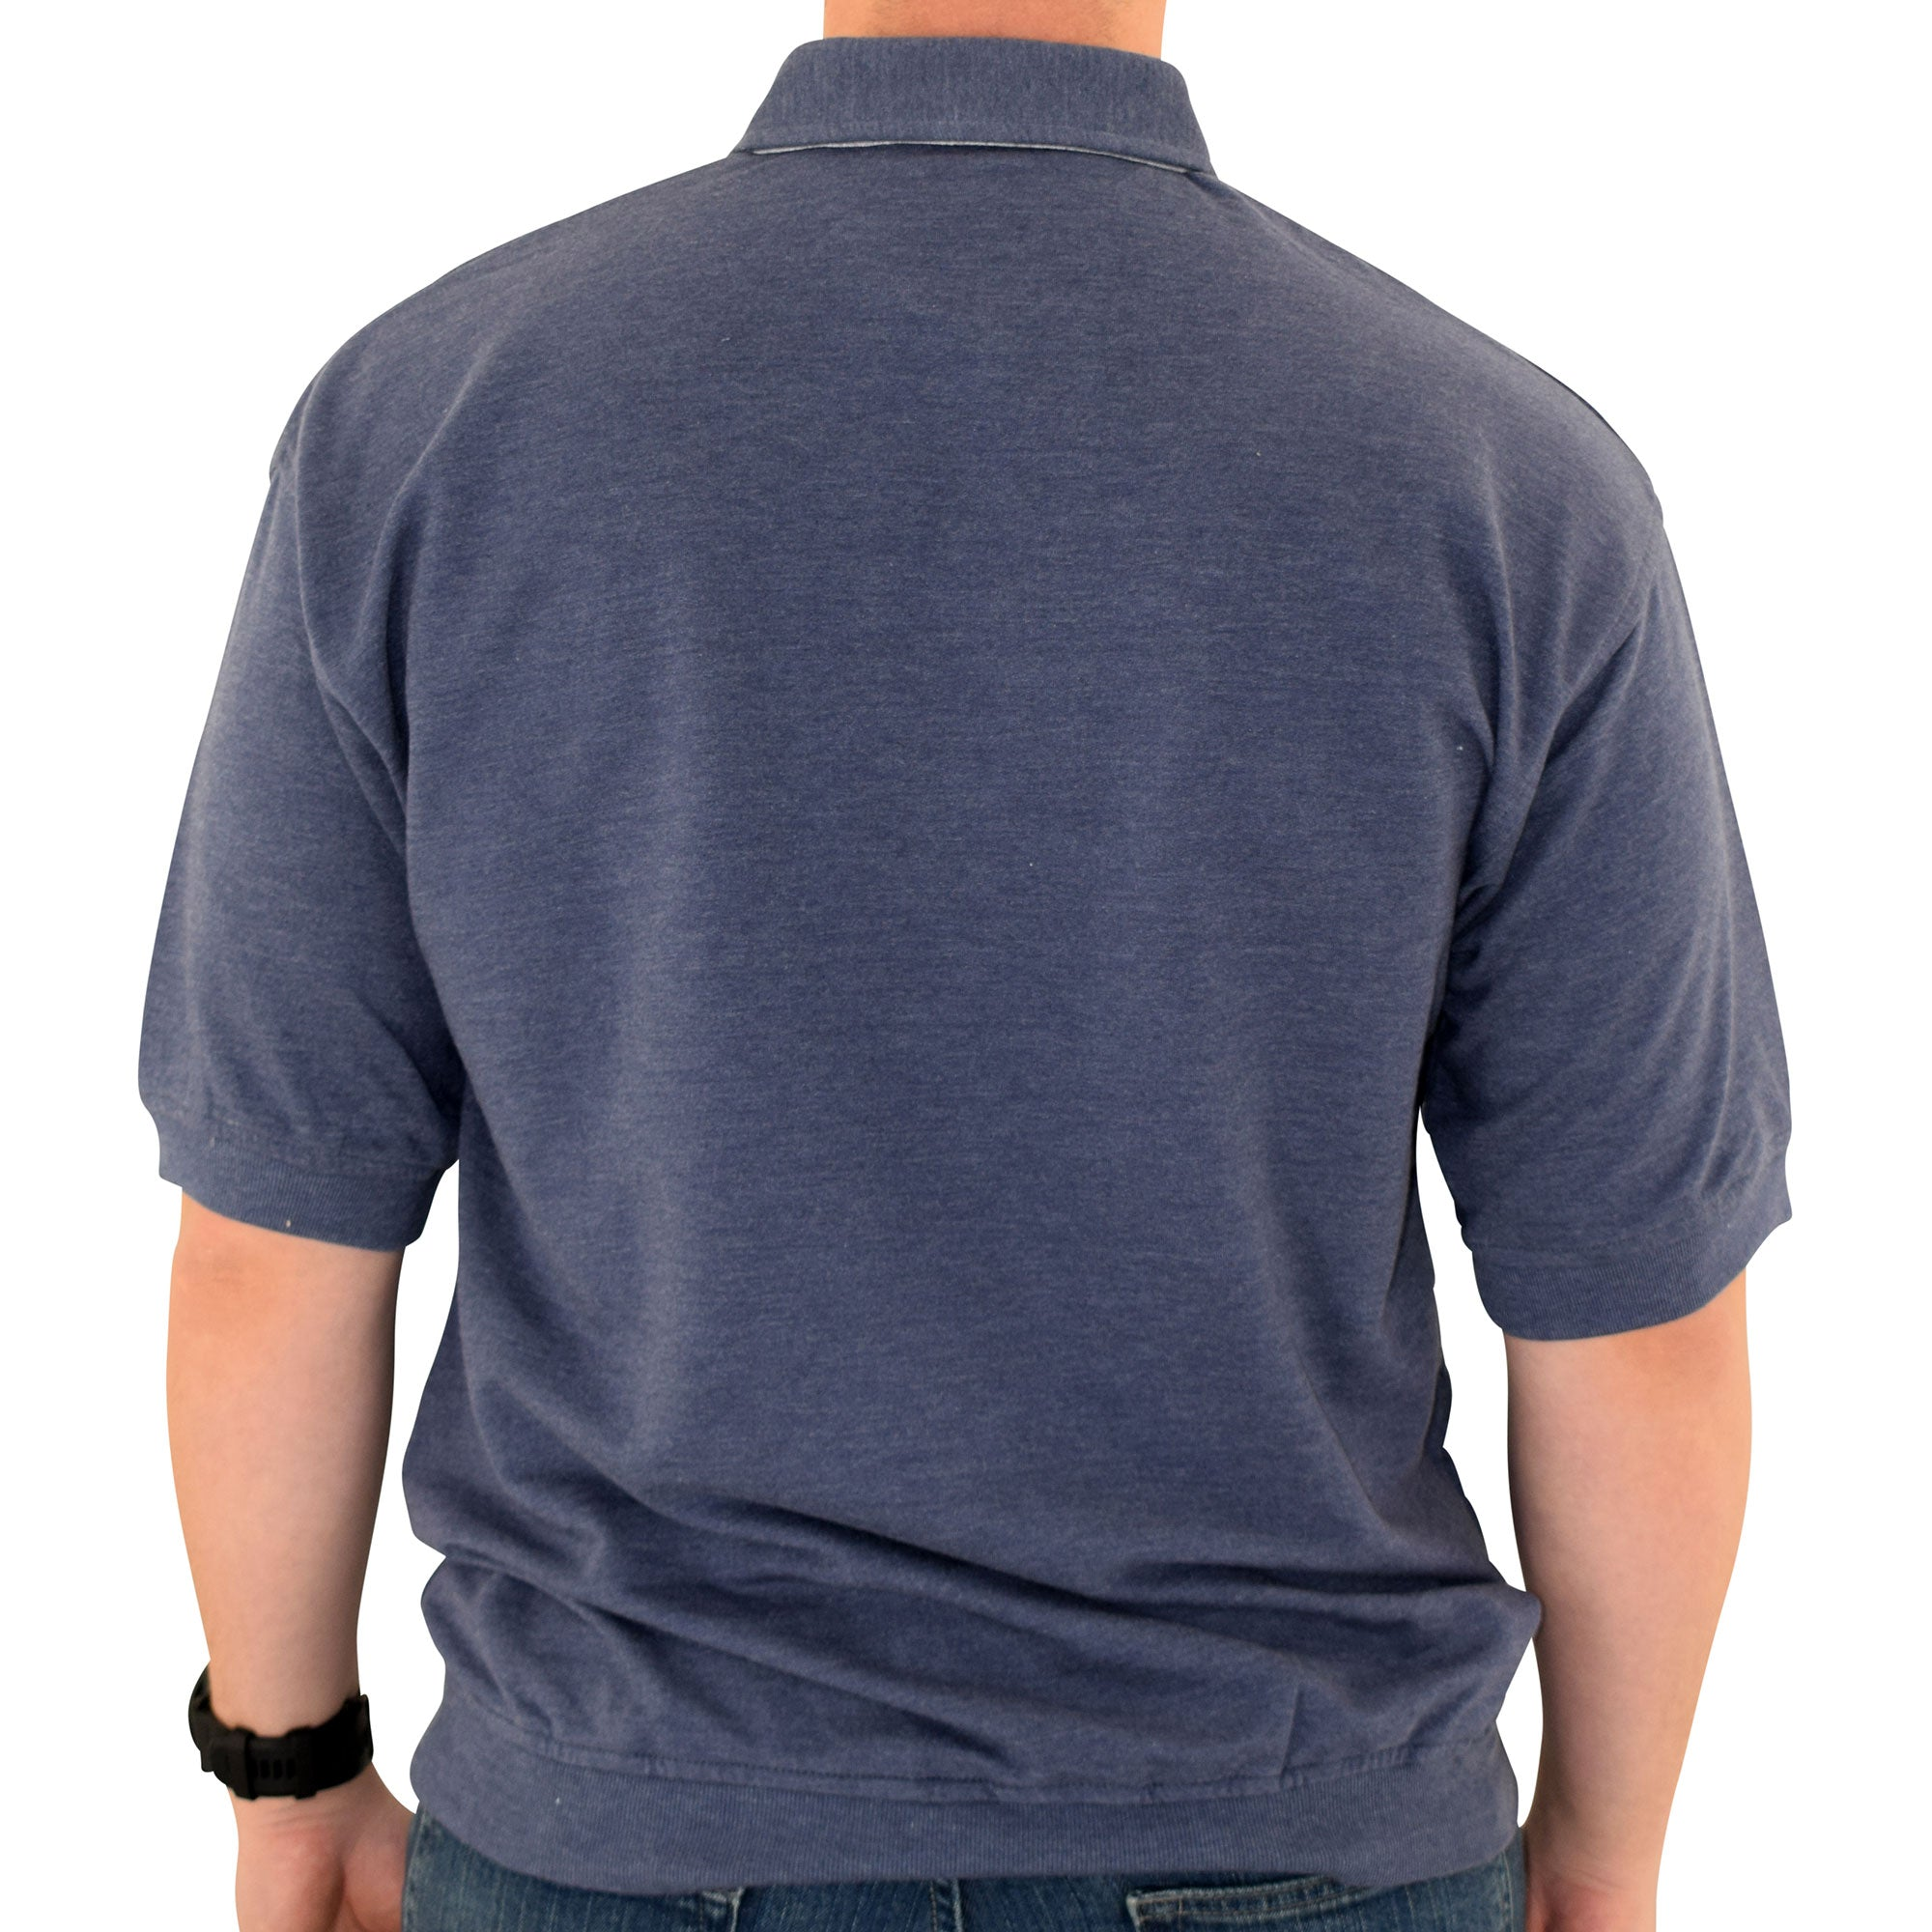 Classics by Palmland French Terry Banded Bottom Shirt - 6090-620J - Navy - bandedbottom